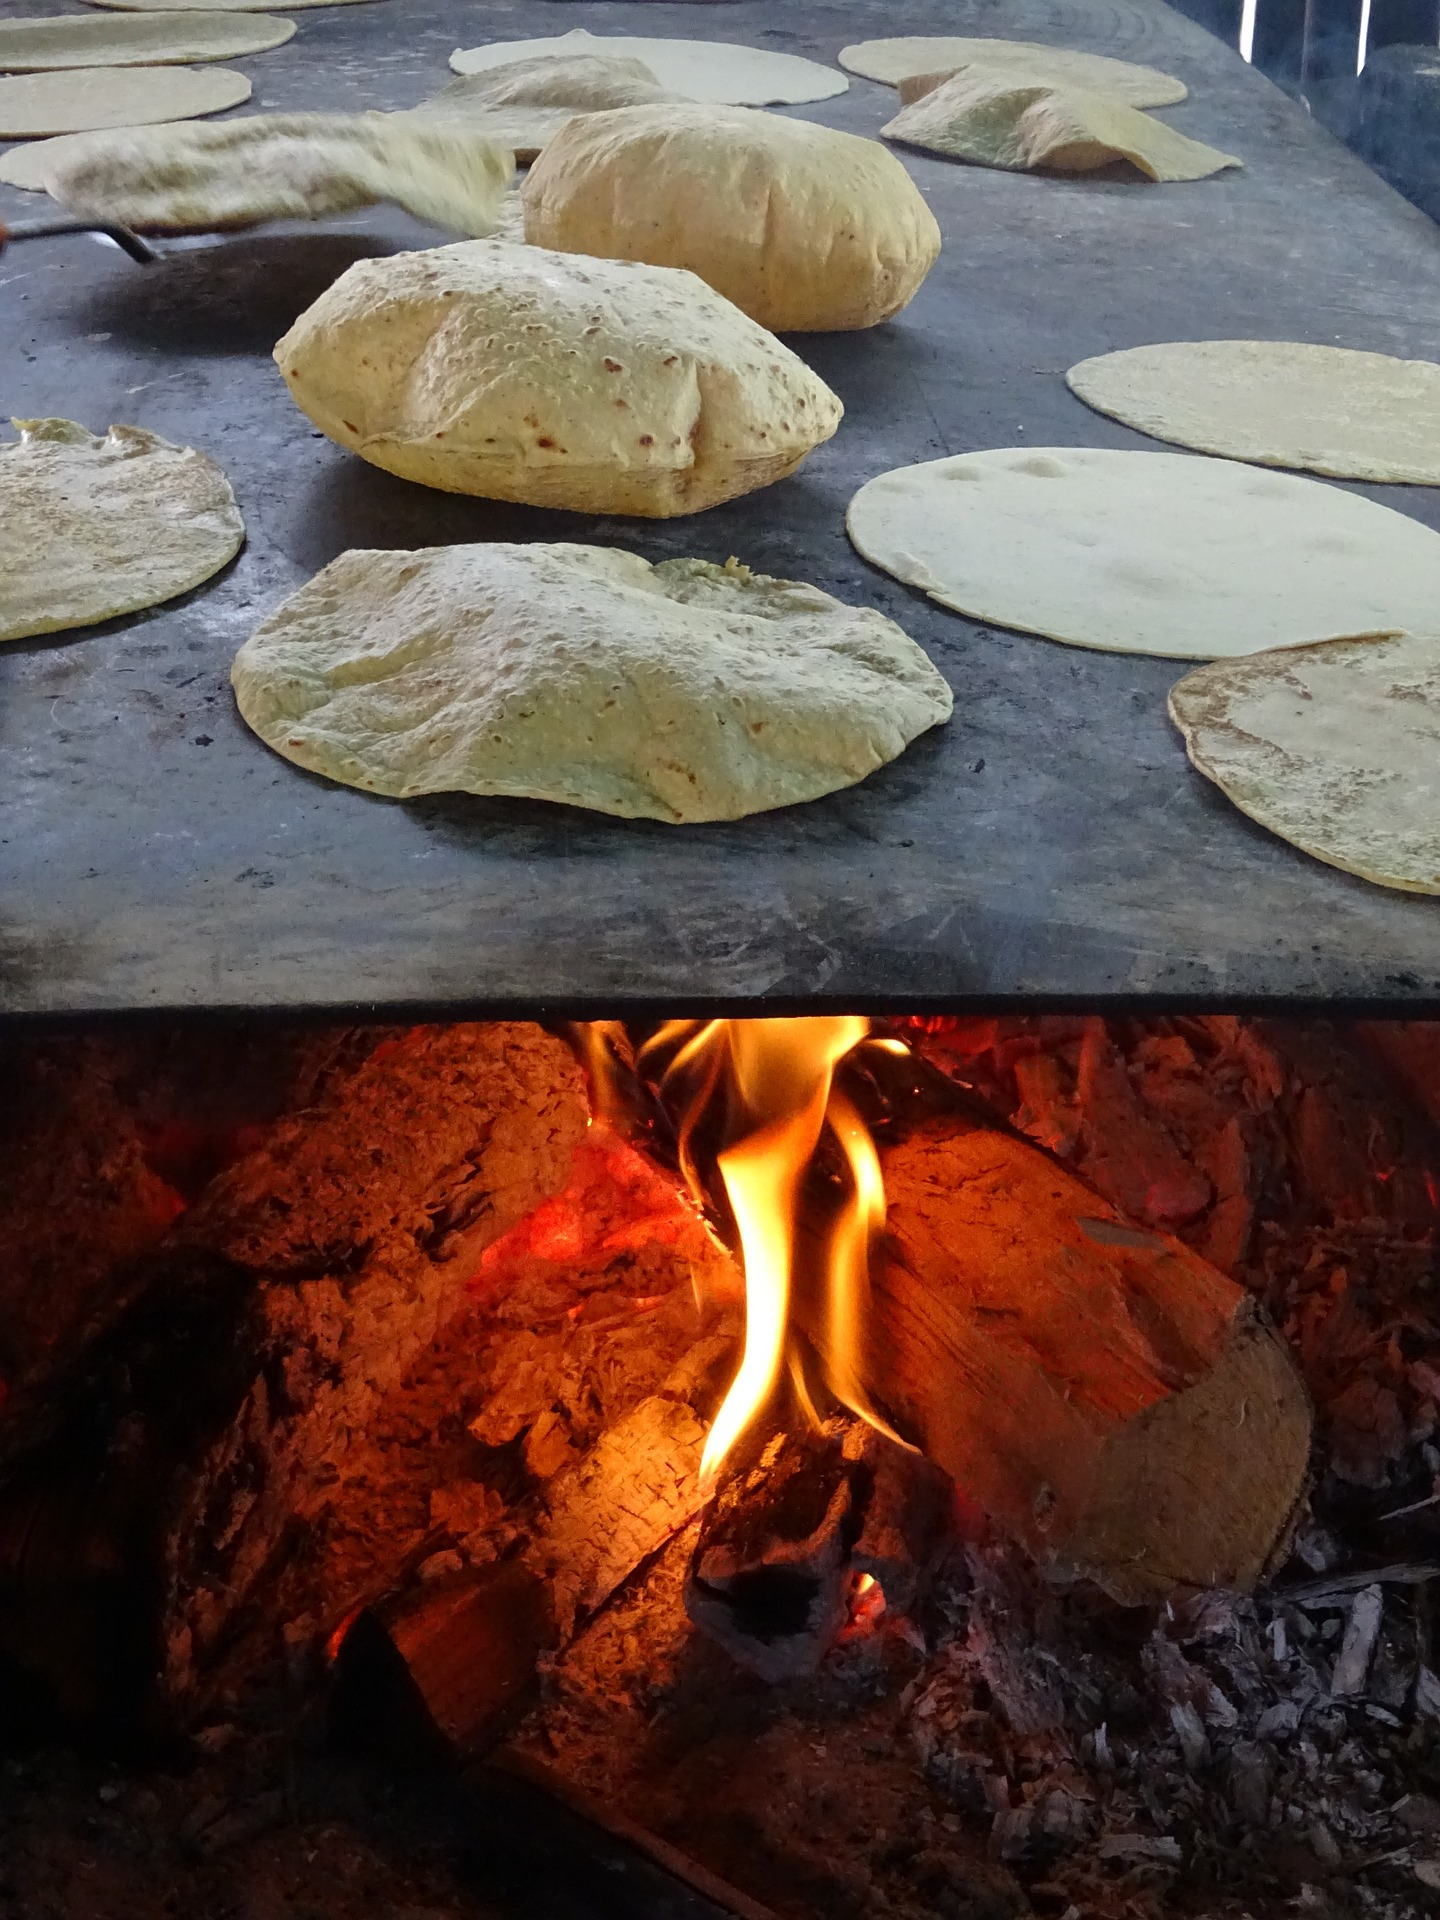 Authentic tortillas cooking over a fire.